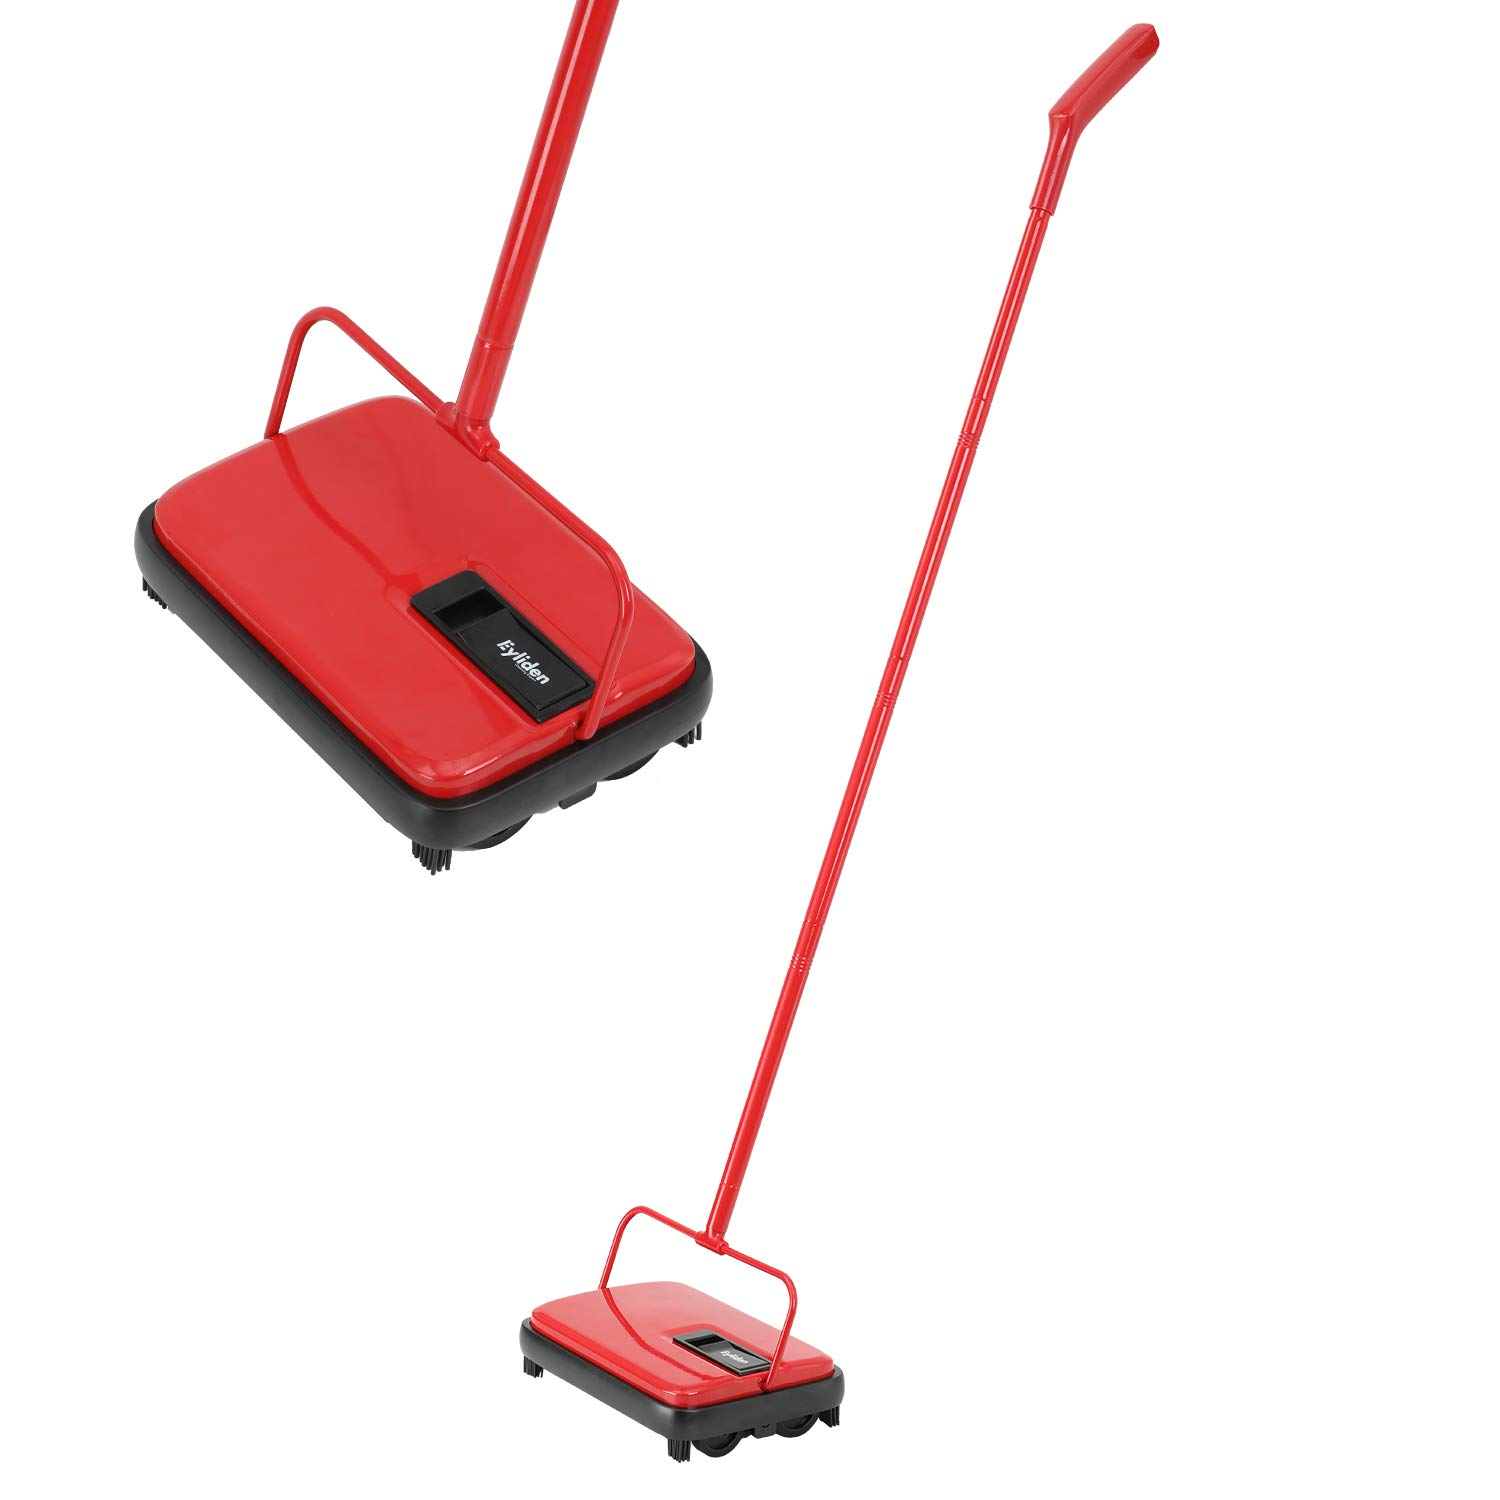 E.yliden Red and Black Handy Floor Carpet Sweeper Lightweight Compact Durable and Easy to Store New Choice by E.yliden